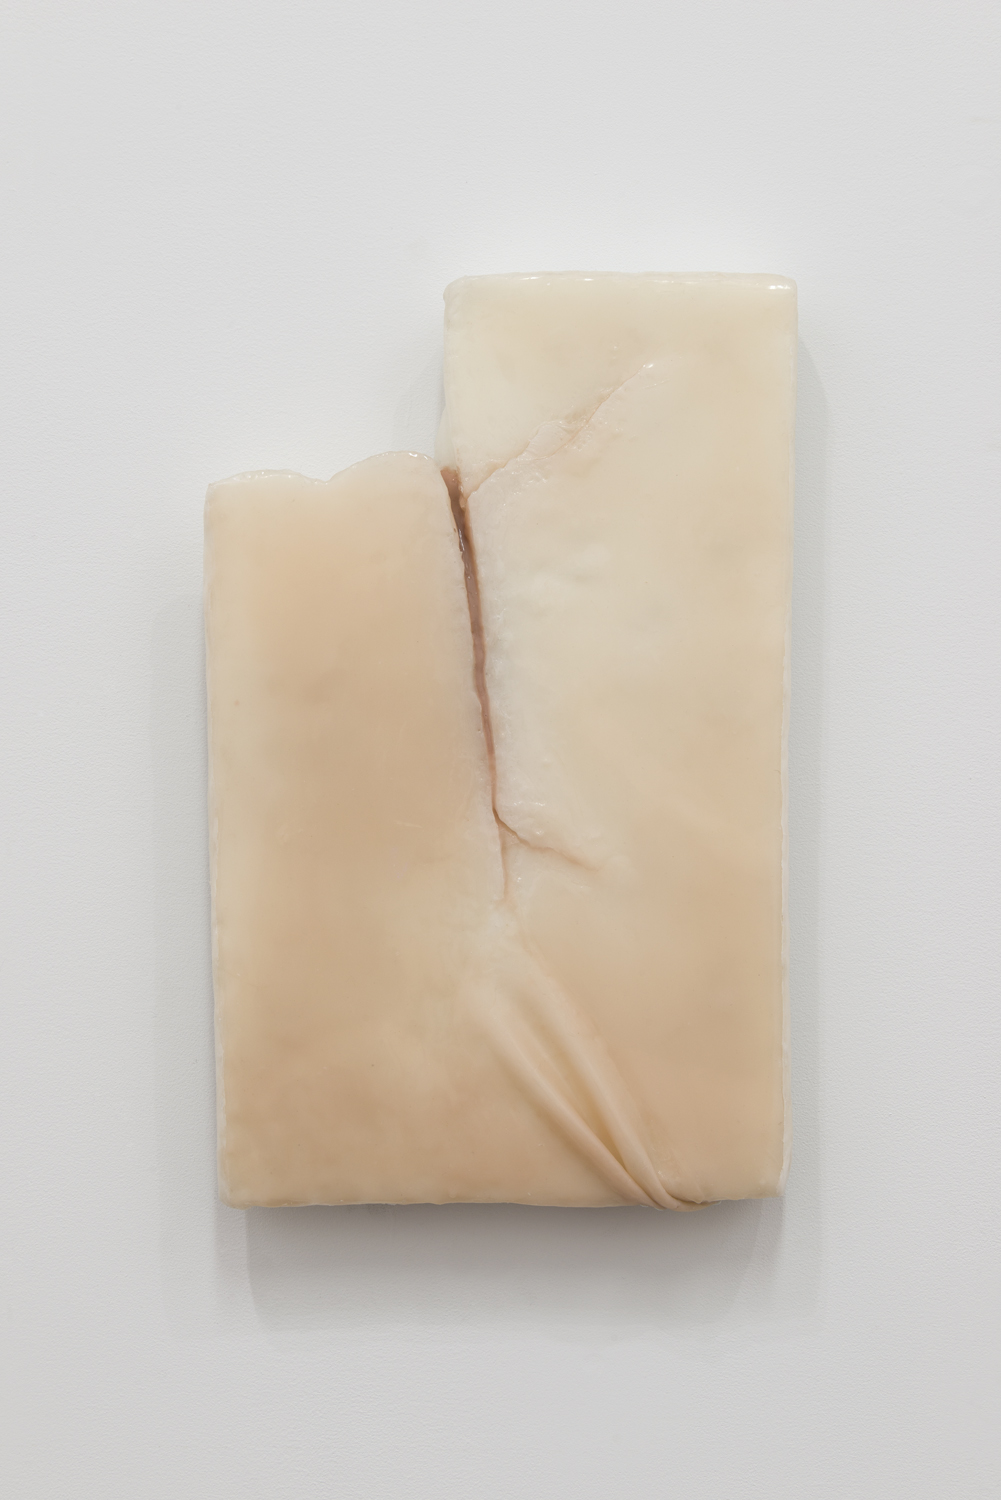 Ivana Basic,  Ungrounding , 2014